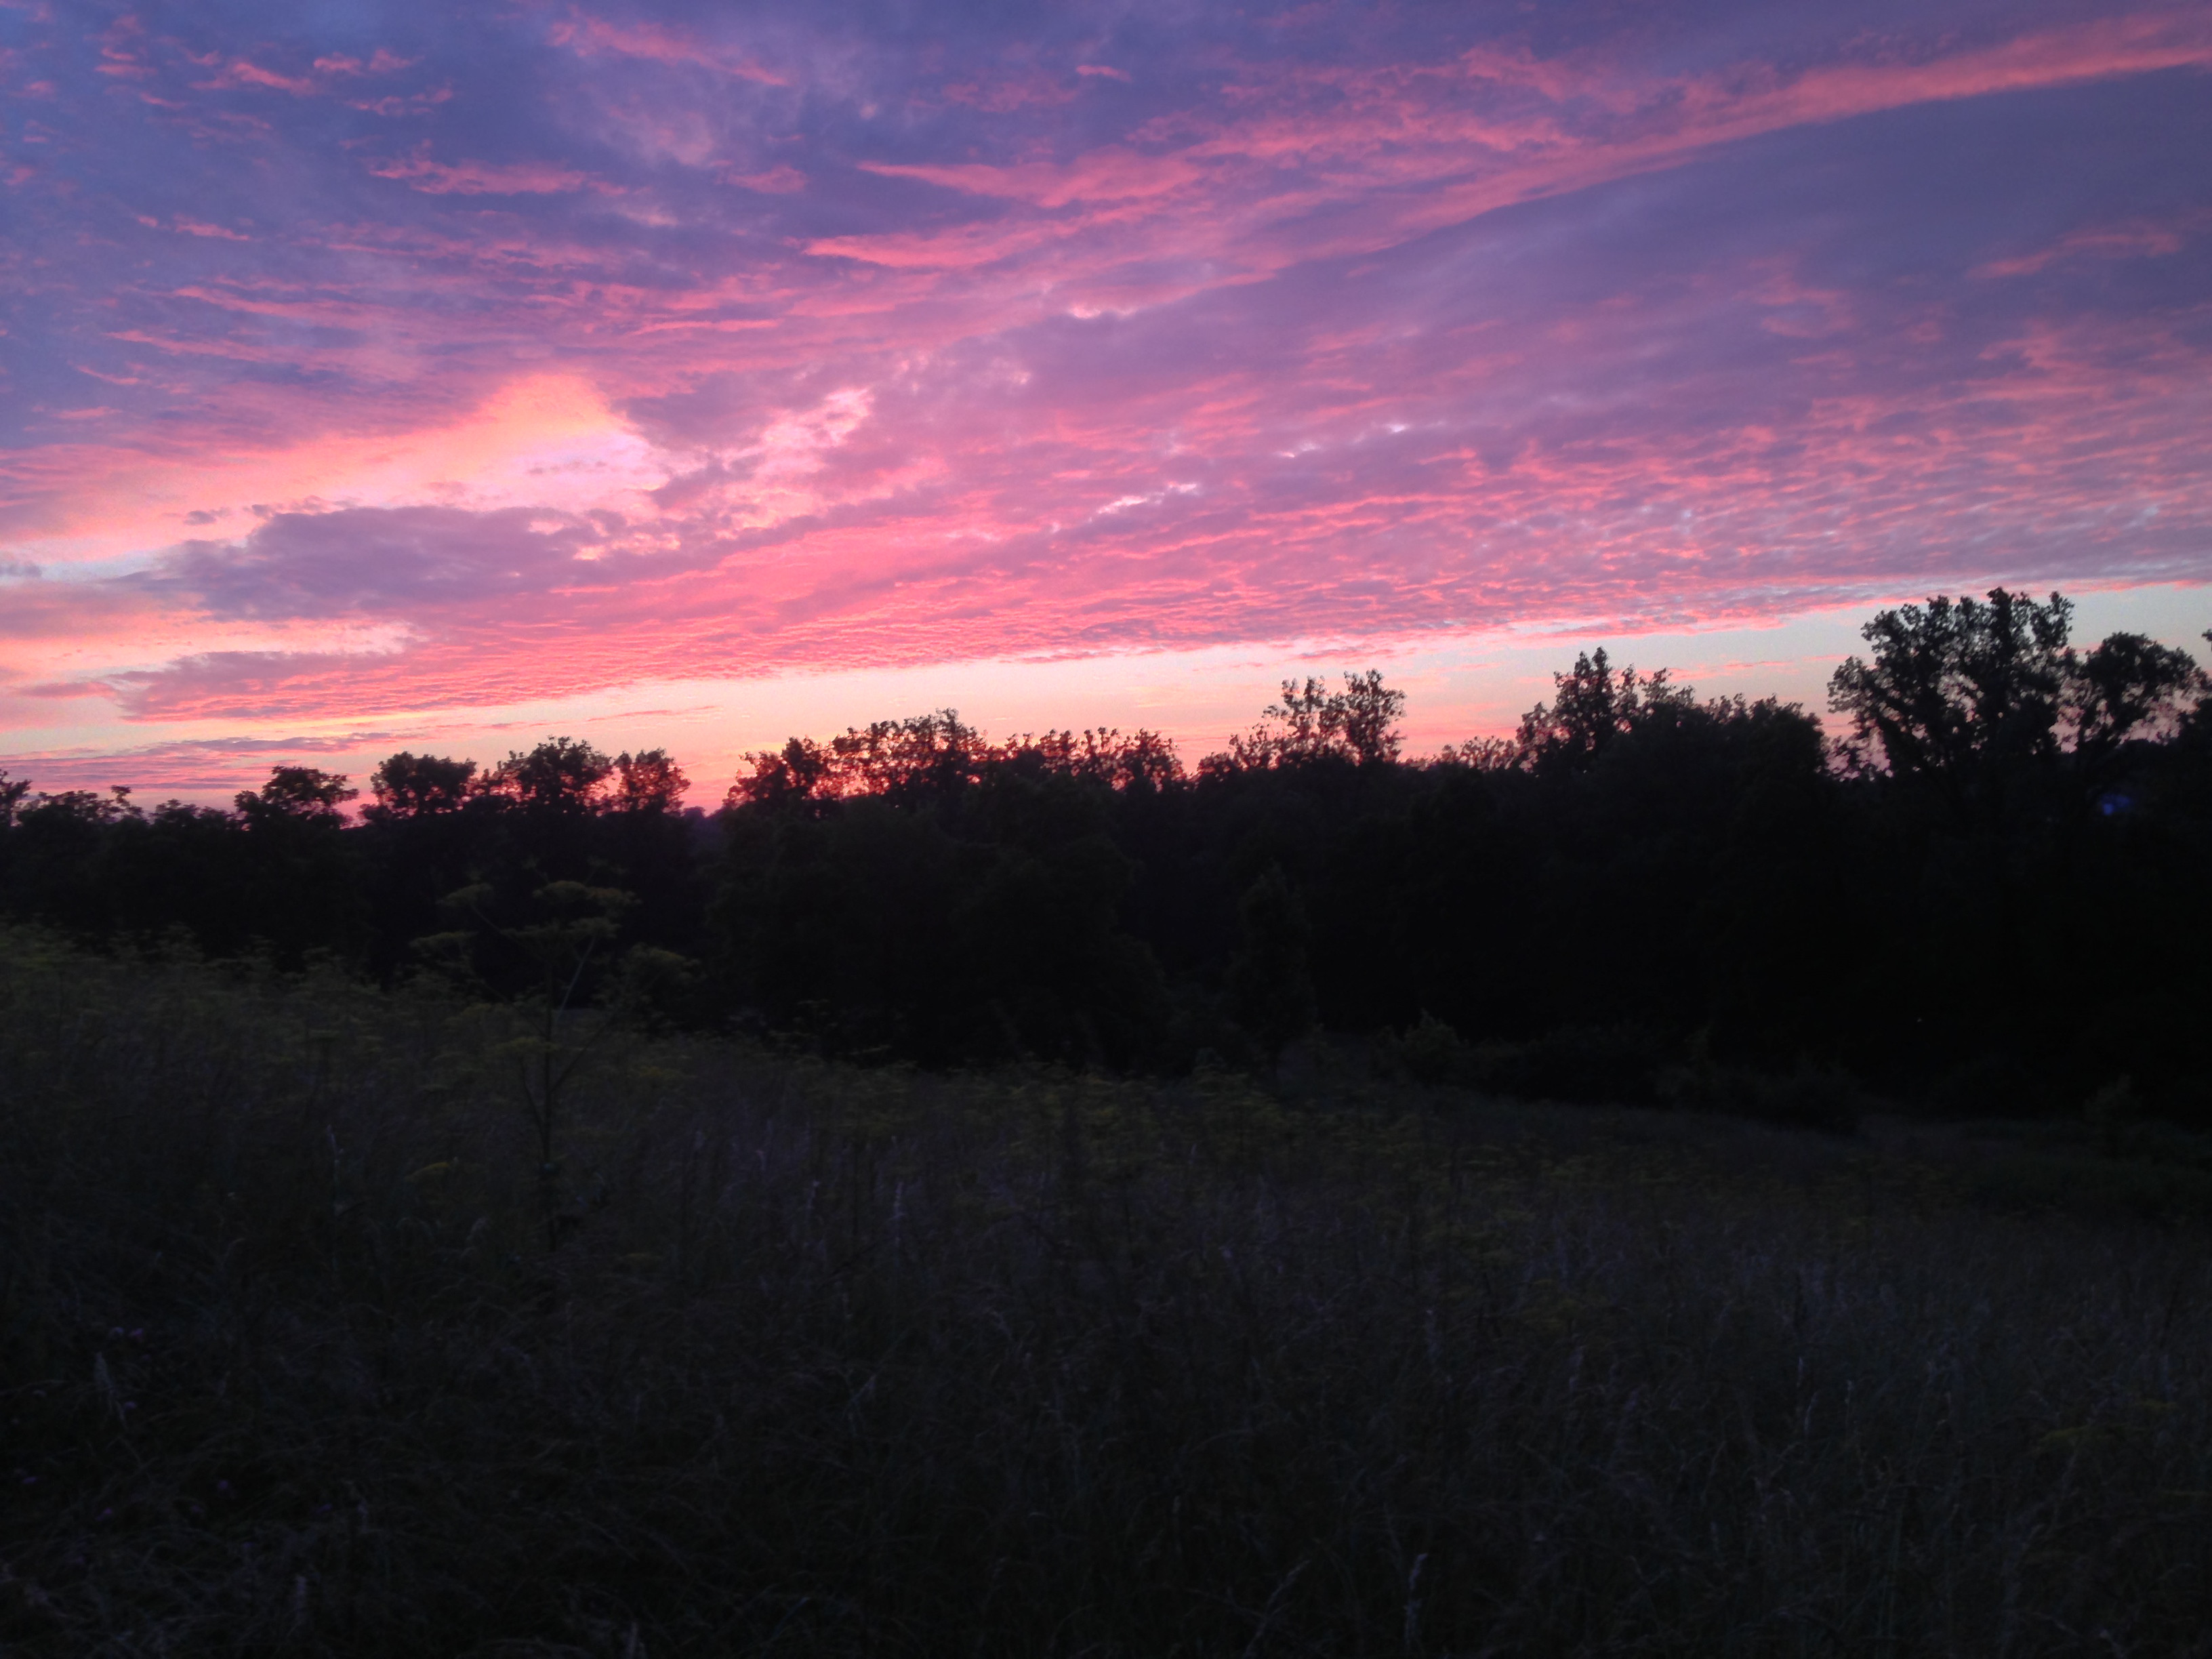 Best ideas about Another Word For Landscape . Save or Pin Another Beautiful Sunset on the Farm Now.